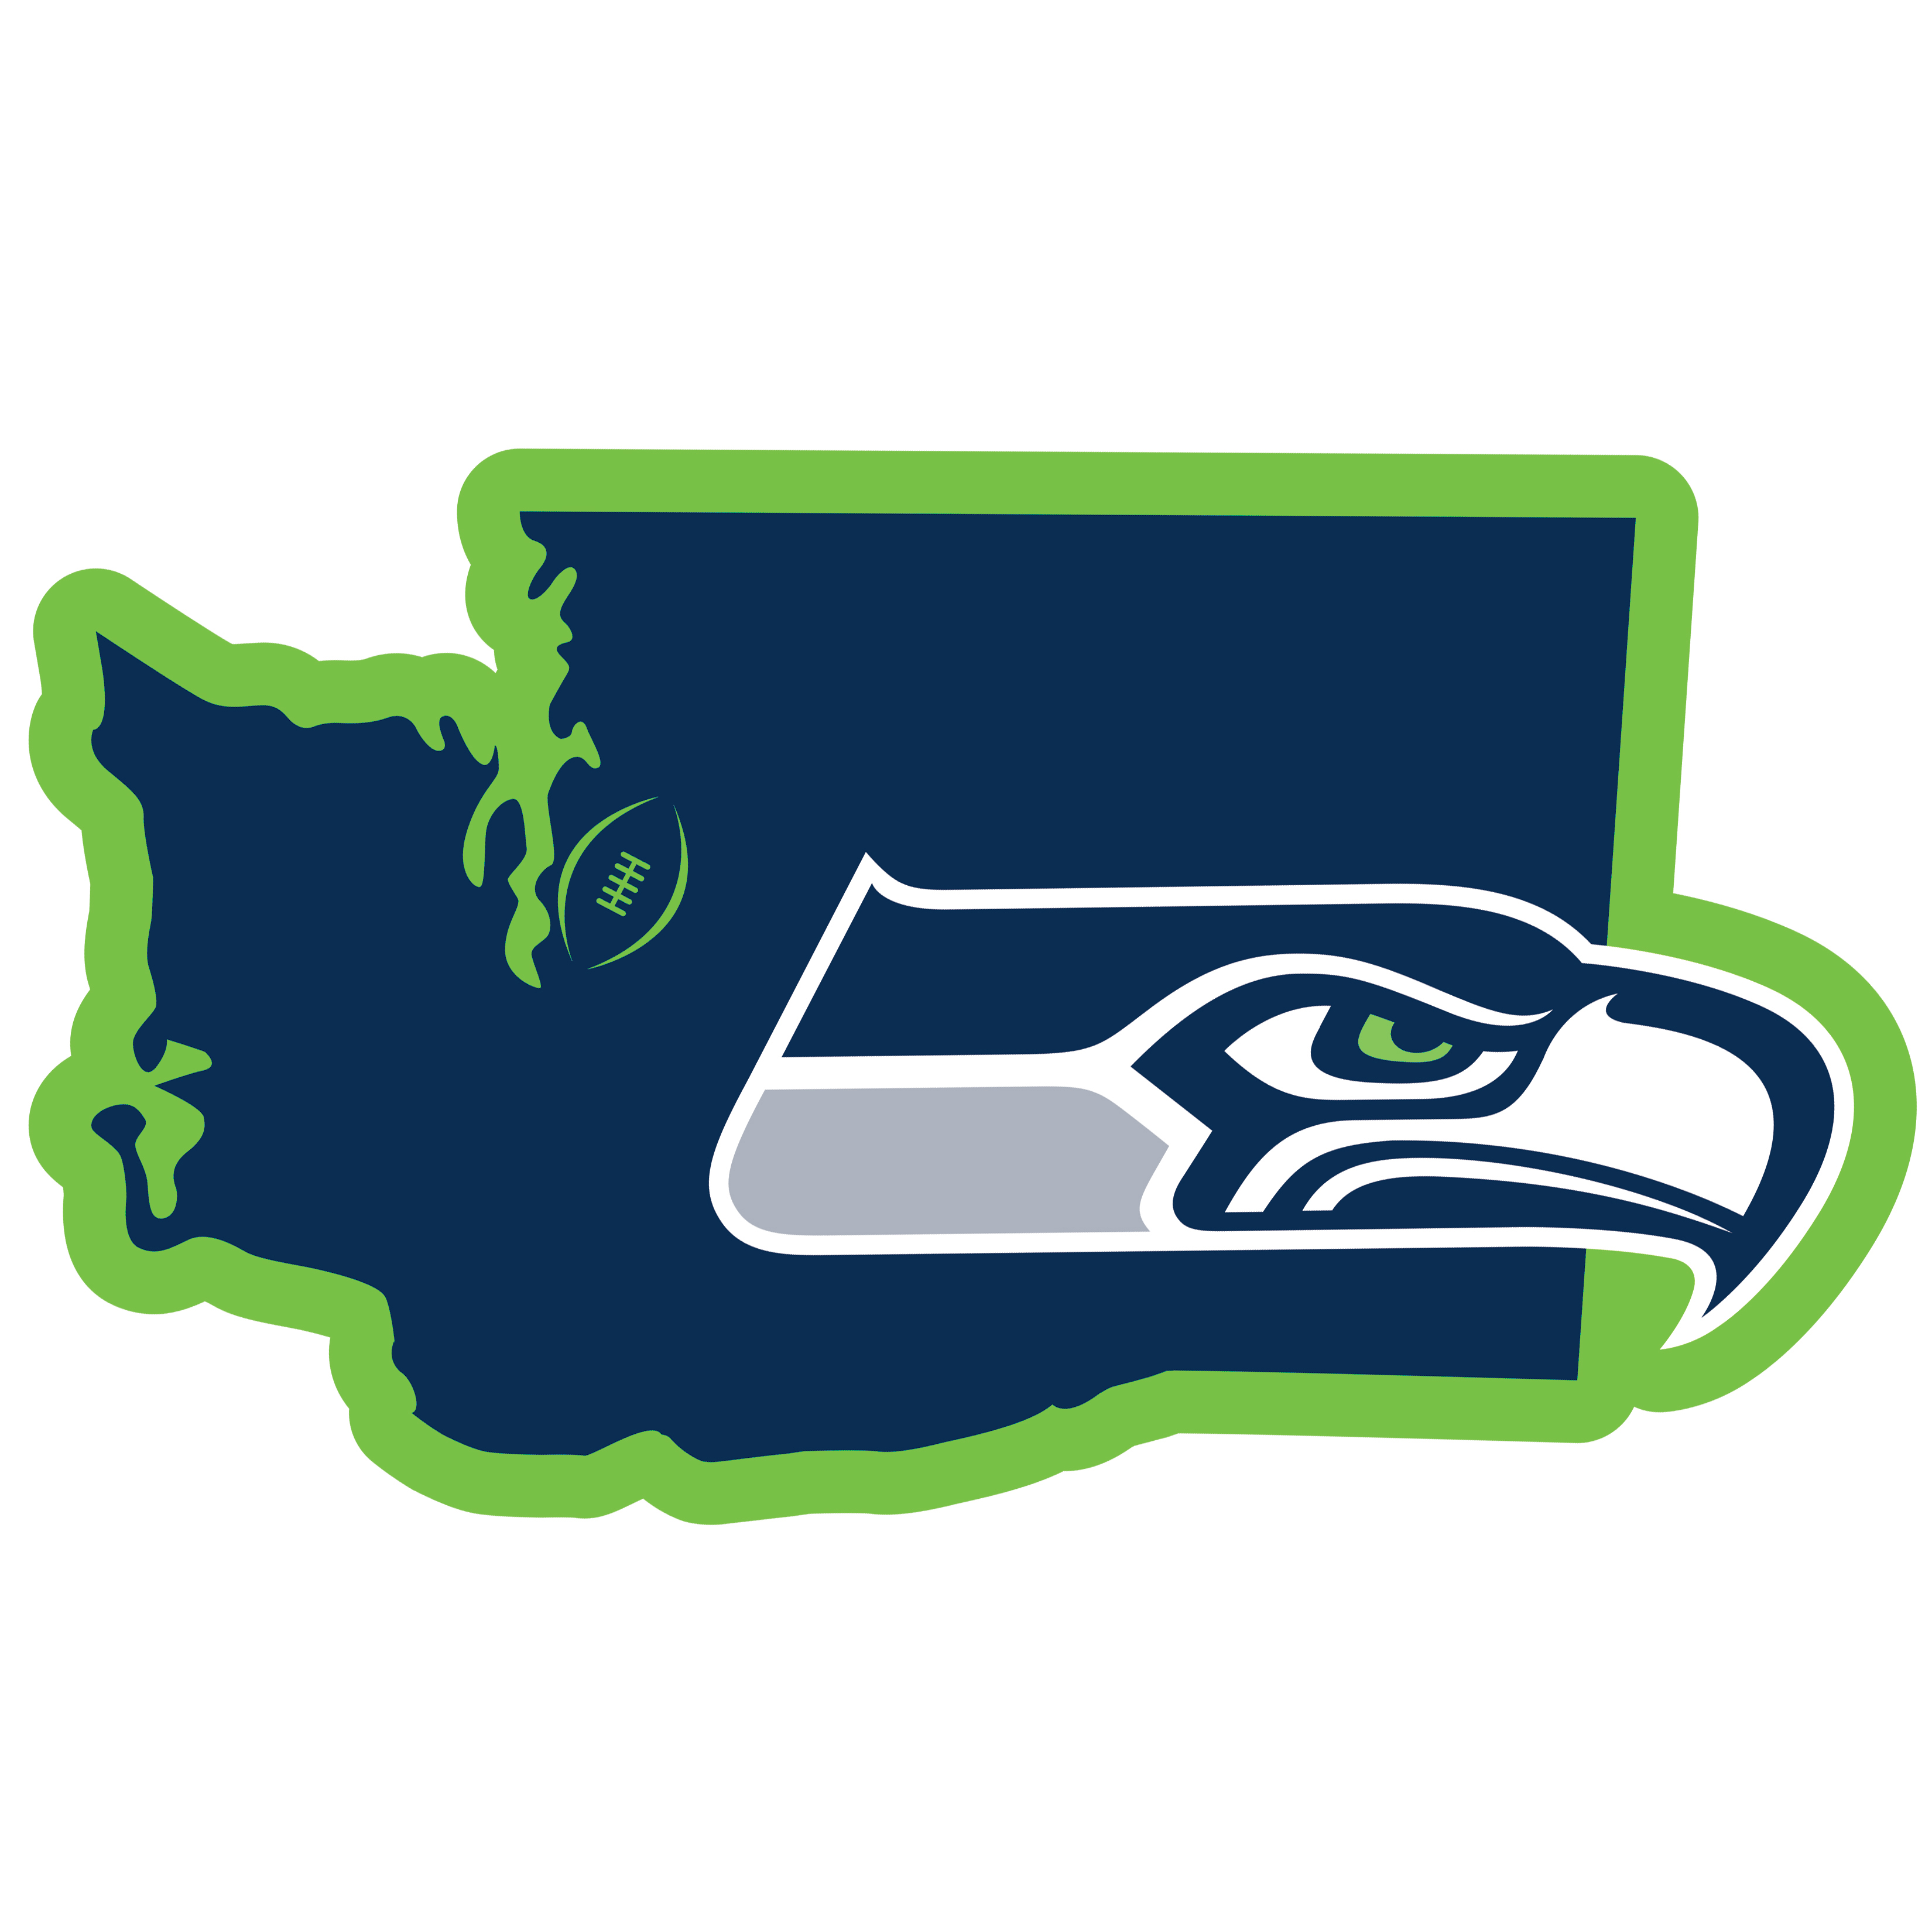 Seattle Seahawks Home State 11 Inch Magnet - Whether you are caravaning to the game or having a tailgate party make sure you car is wearing its fan gear with our extra large, 11 inch Seattle Seahawks home state magnets. These striking magnets can be easily placed on for game day and removed without the residue left by decals. The design features a bright state outline with the location of the team highlighted with a football and a large team logo.